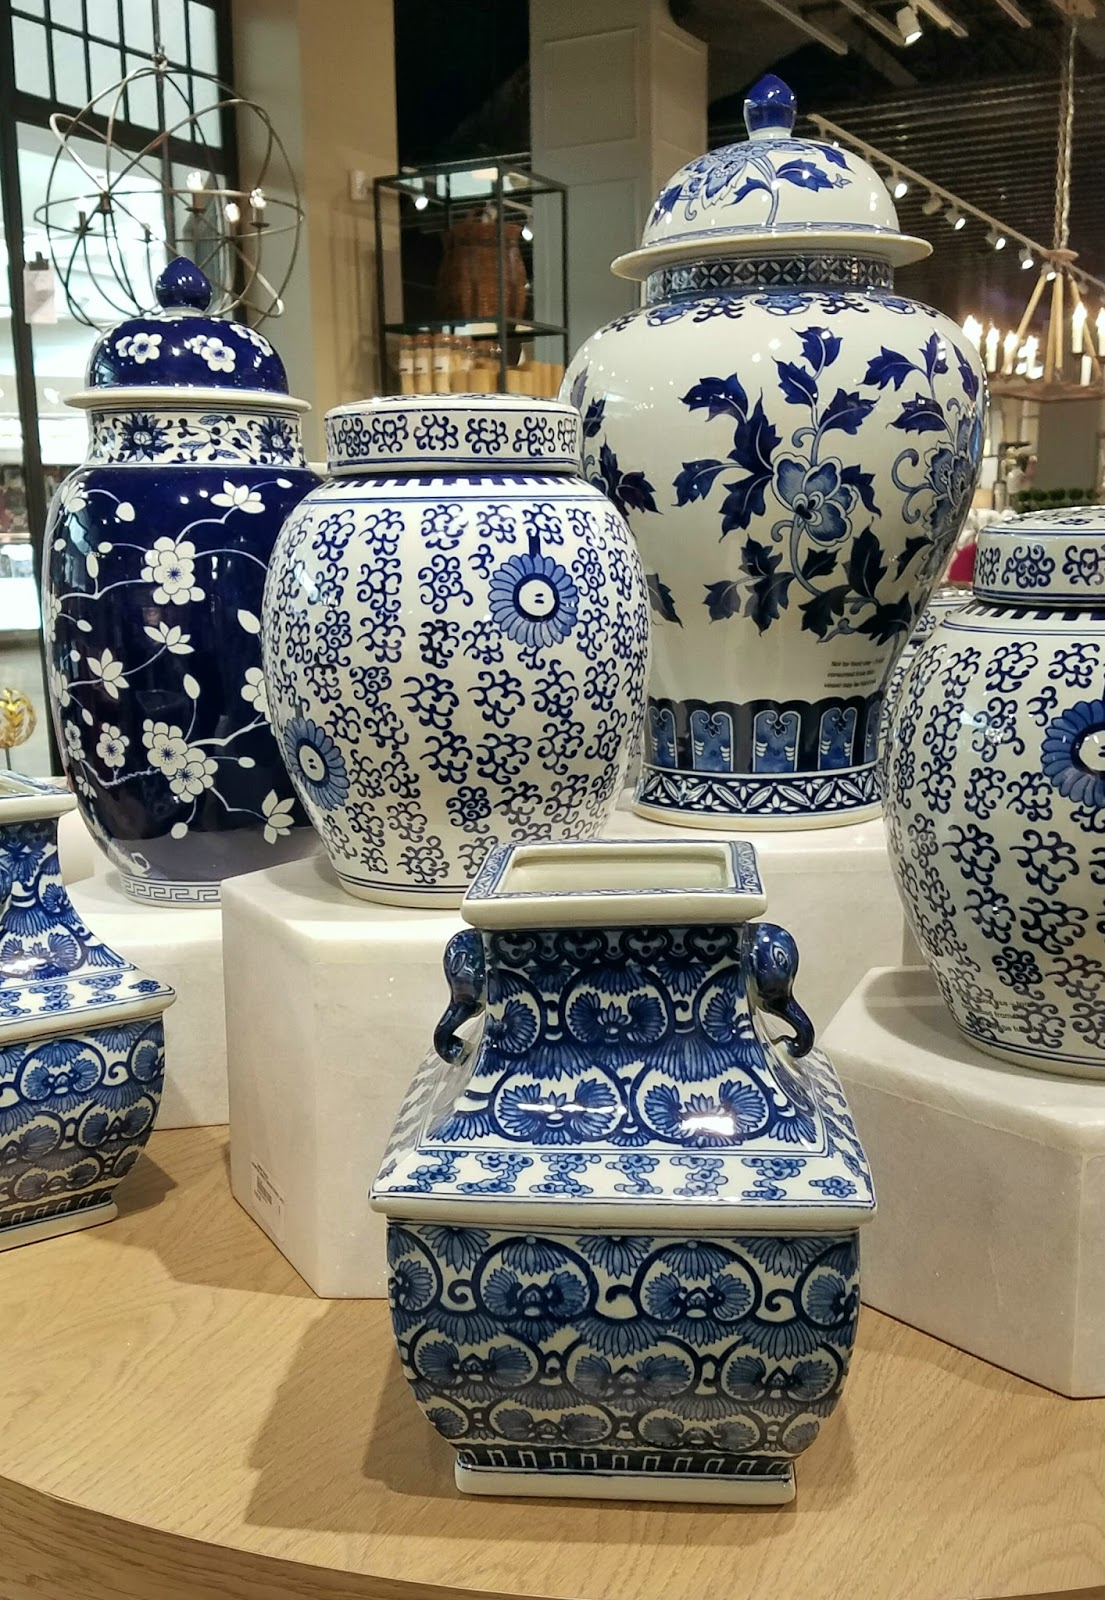 a design snack by linda pakravan ballard designs in natick ballard s beloved classics like blue and white porcelain and pagoda lanterns are on display